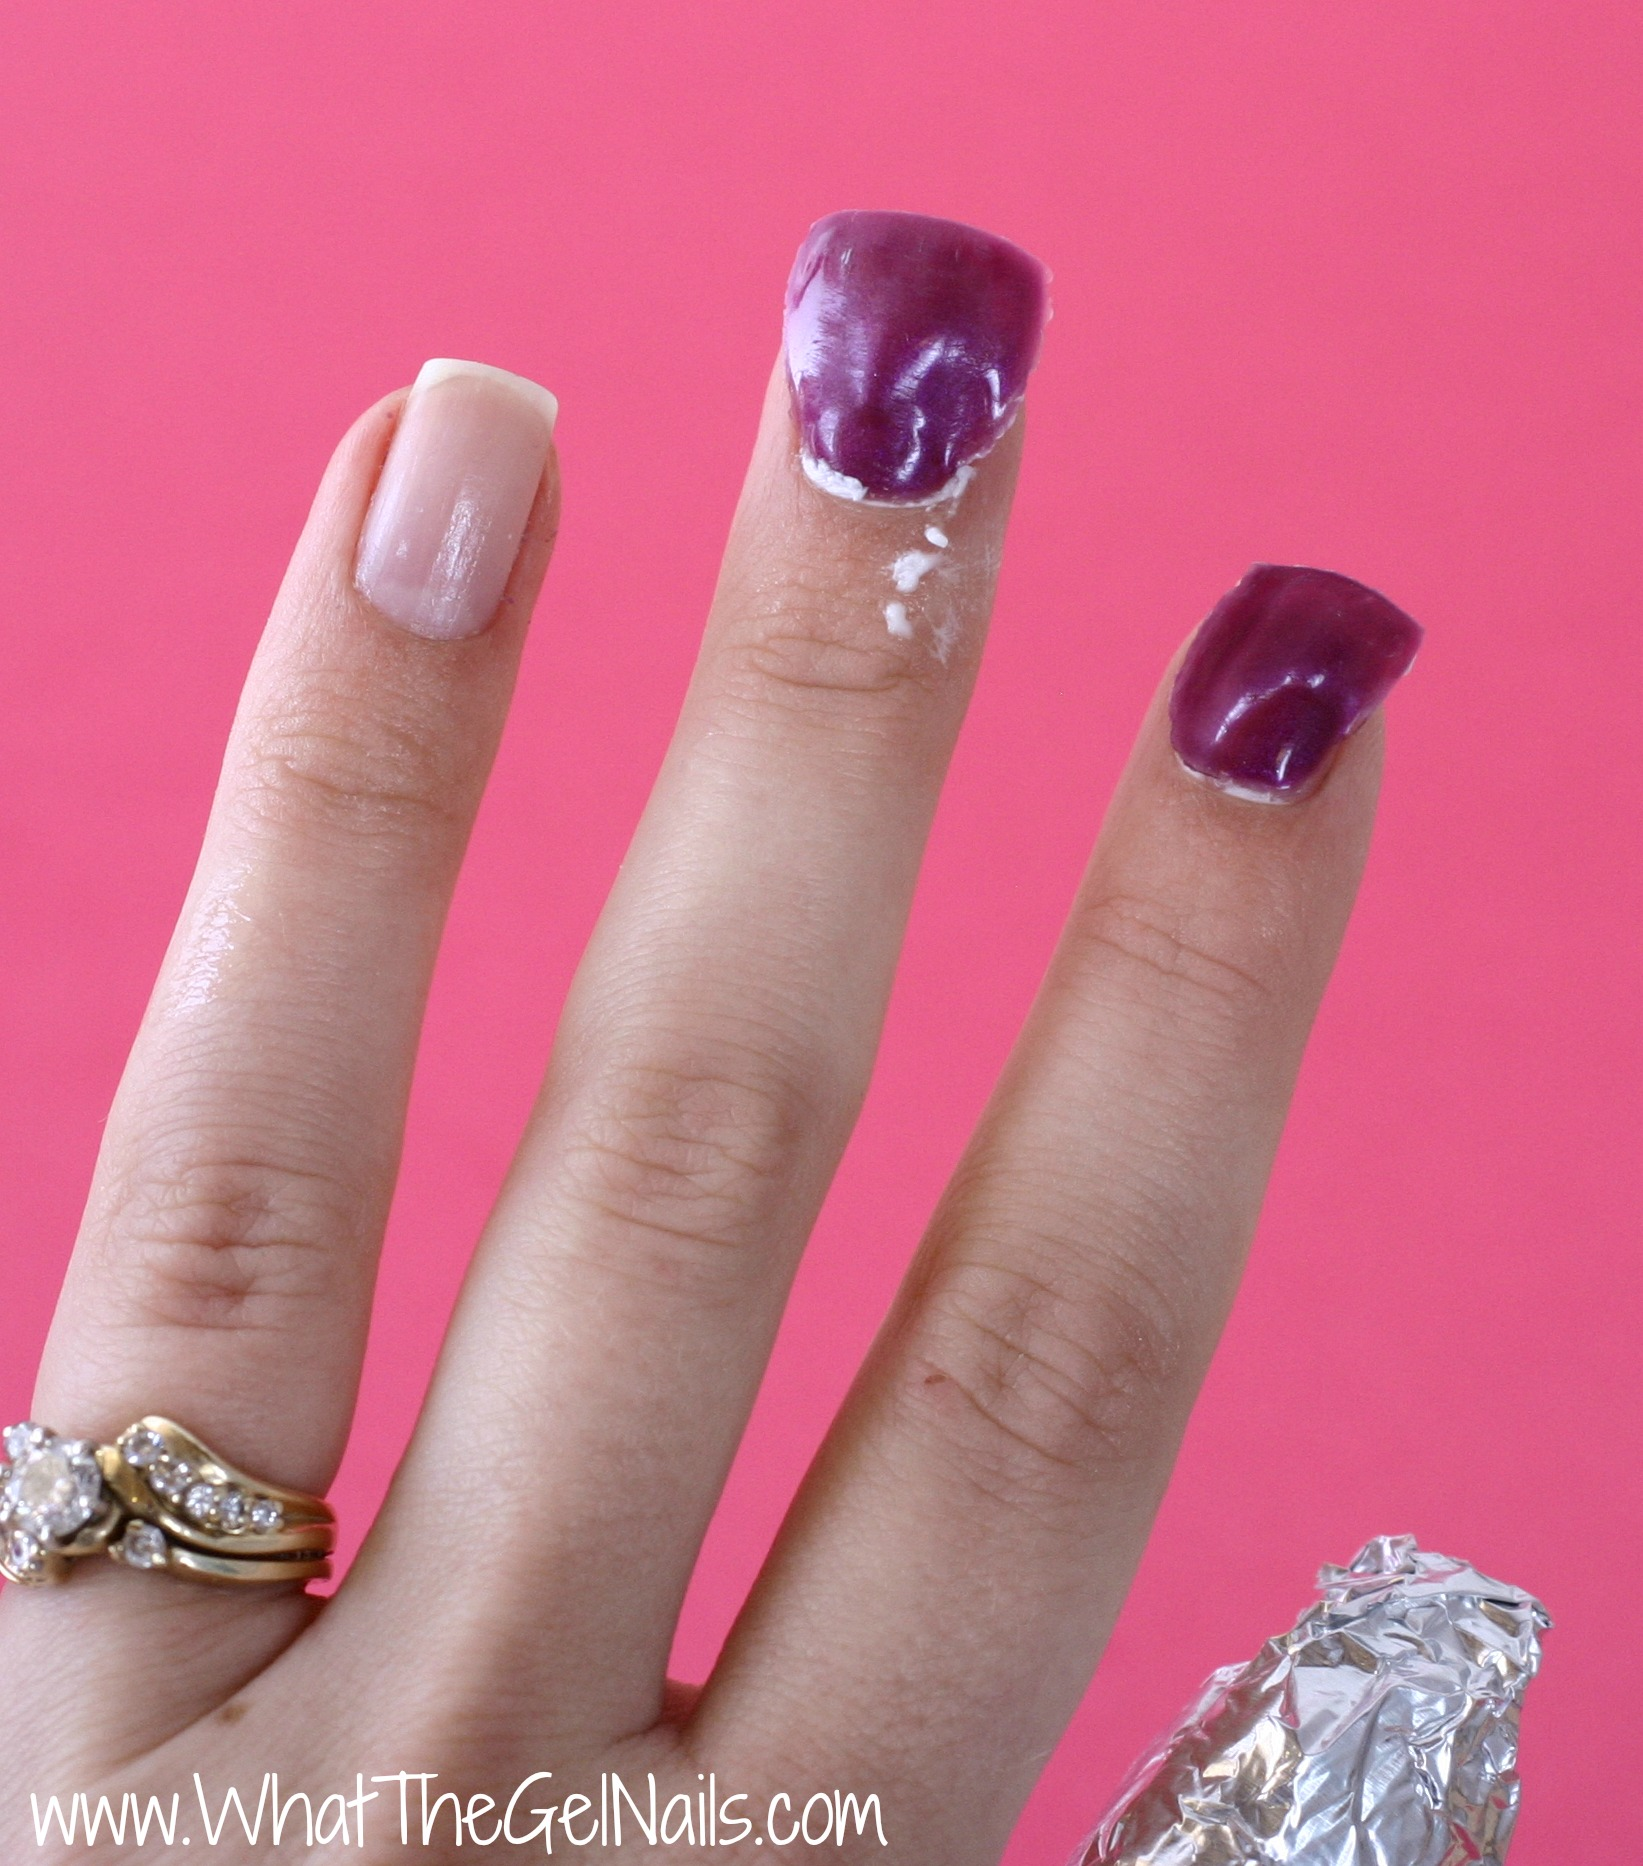 extended gel nails take off photo - 1